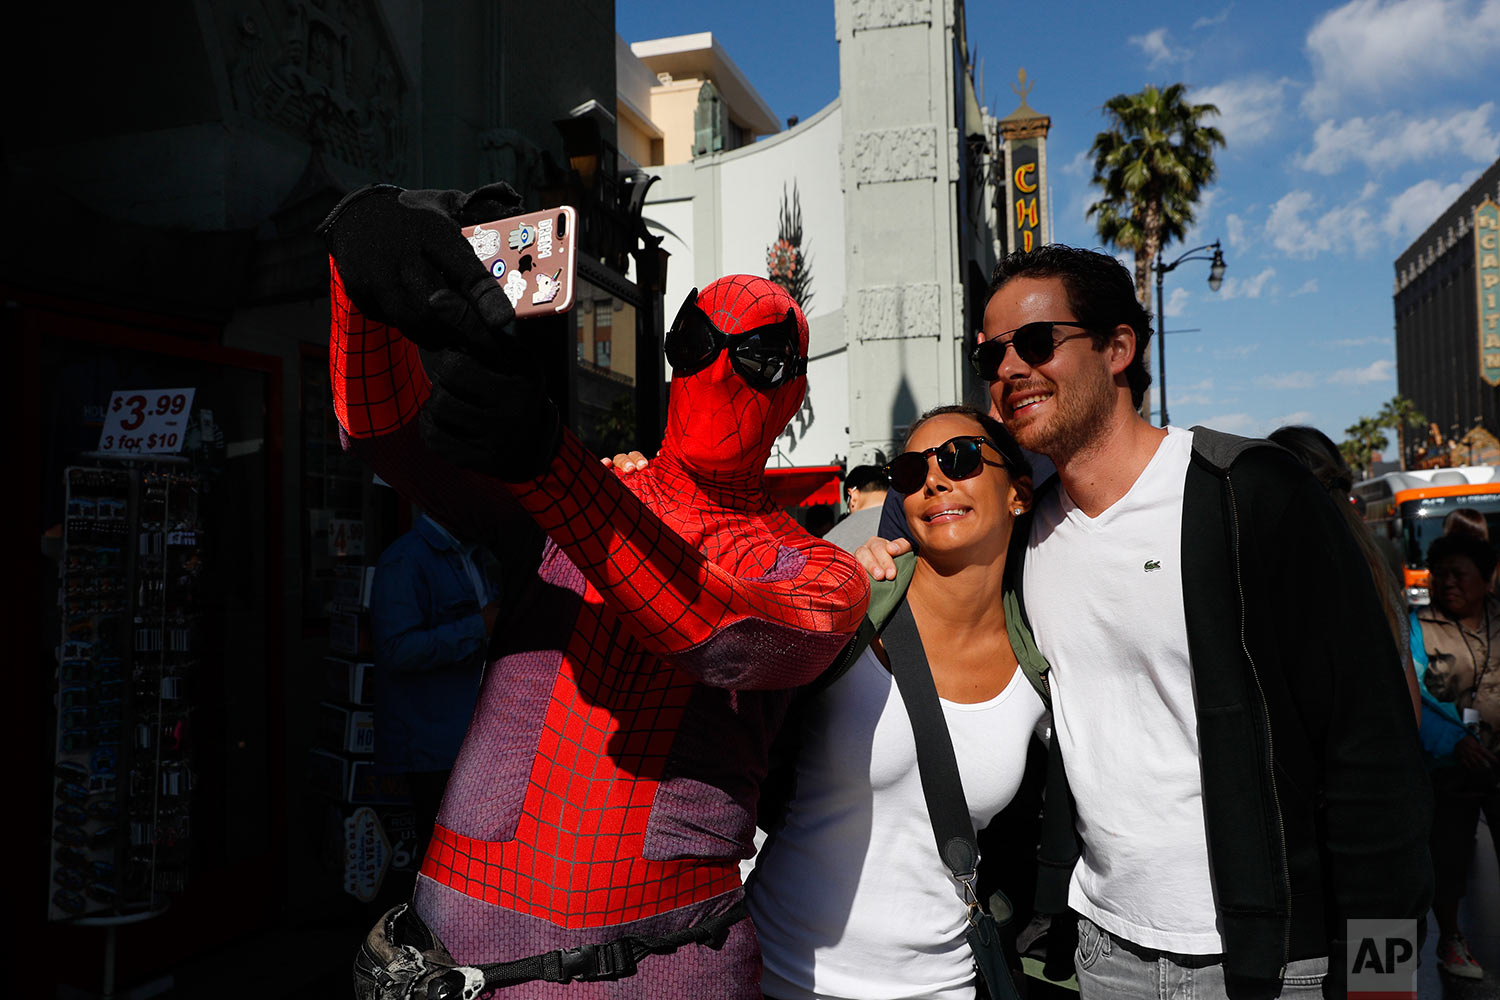 "In this Wednesday, May 24, 2017 photo, superhero impersonator and actor Dan Inigo, left, uses a tourist's smartphone to take a selfie on Hollywood Boulevard in Los Angeles. ""It's a place of diversity, it's a place of drama, it's a place of illusion … a place of broken dreams,"" says the 25-year-old actor who prowls the boulevard dressed as Spider-Man. Although he barely scrapes by, Inigo says it's still a great gig for a struggling actor who needs to keep a schedule open for auditions. (AP Photo/Jae C. Hong)"